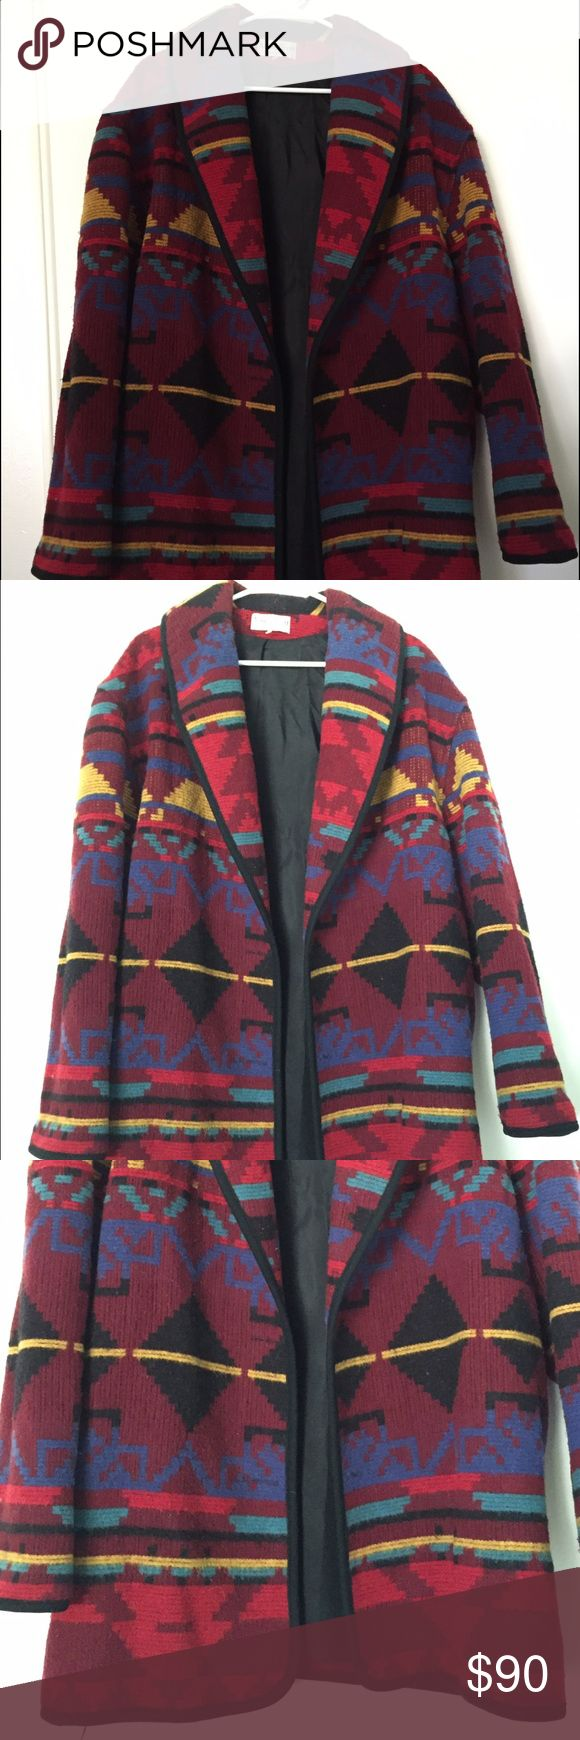 Ashley Scott coat Vintage Tribal pattern coat. It's lined on the inside. 85% wool 15% nylon. Dry clean only. Great condition but it is missing the front buttons. Doesn't seem to really need them, unless you want to button it up. I'd say it's a size Large/ XL. Made in the USA ashley scott Jackets & Coats Pea Coats